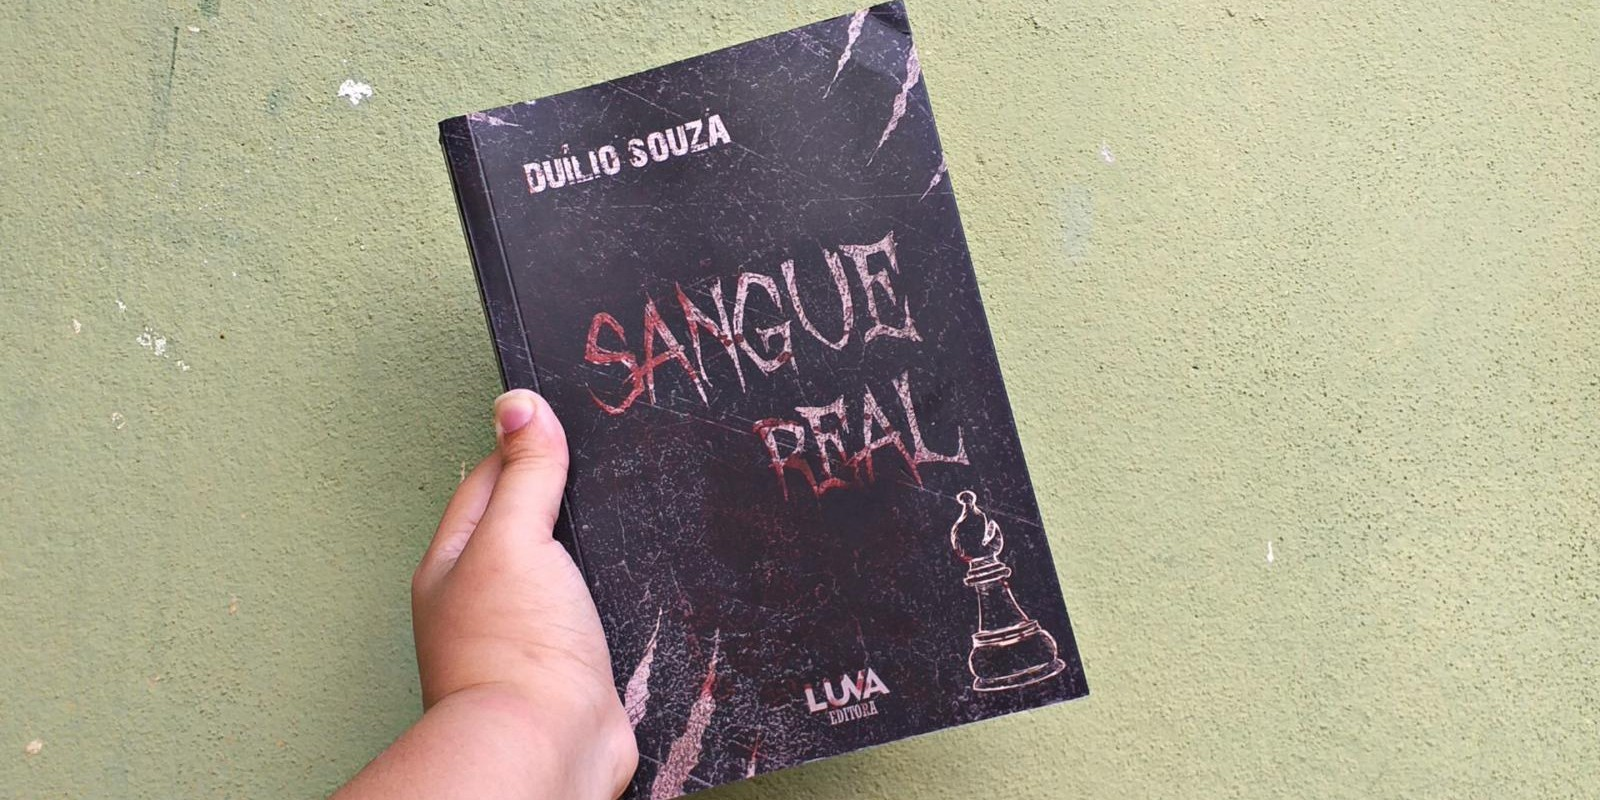 [SANGUE REAL - Duílio Souza]